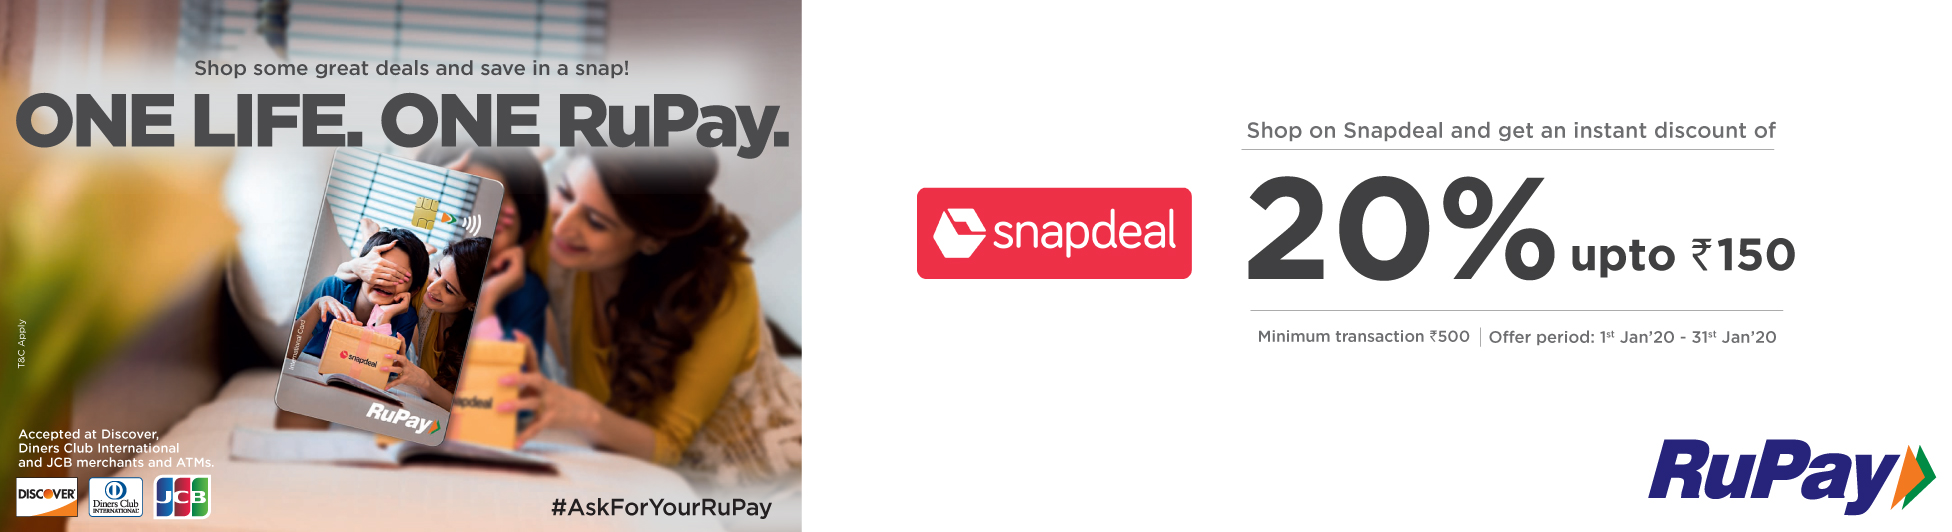 Snapdeal-Rupay